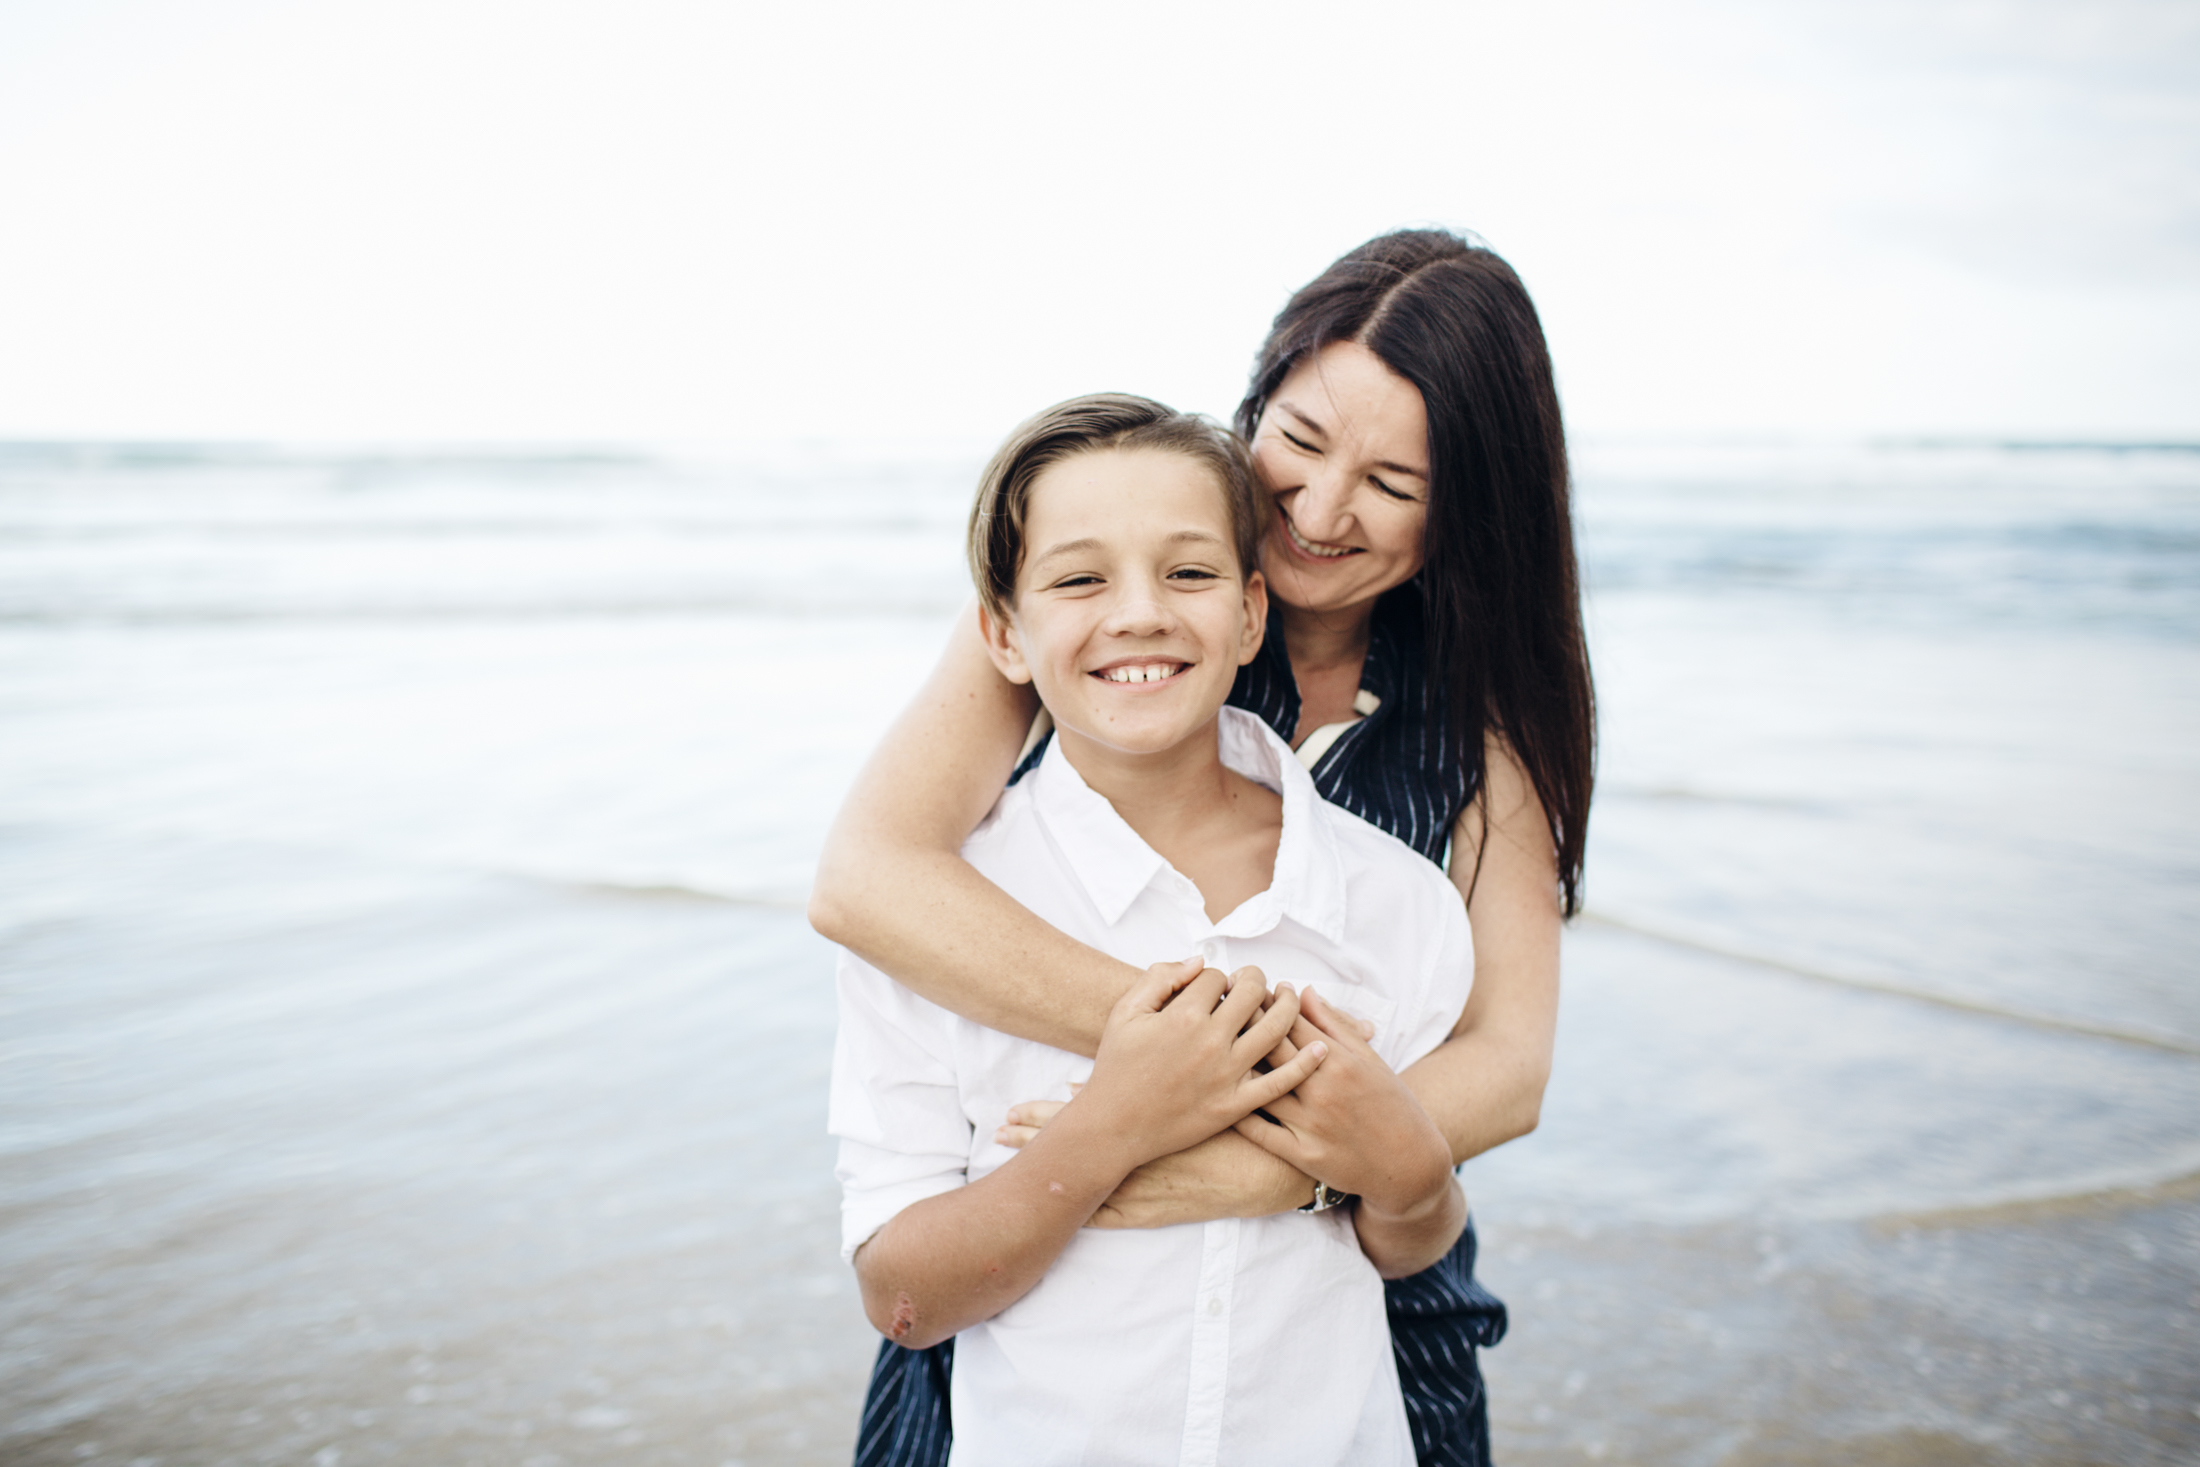 sheridan_nilsson_northern_beaches_lifestyle_family_photographer.041.jpg